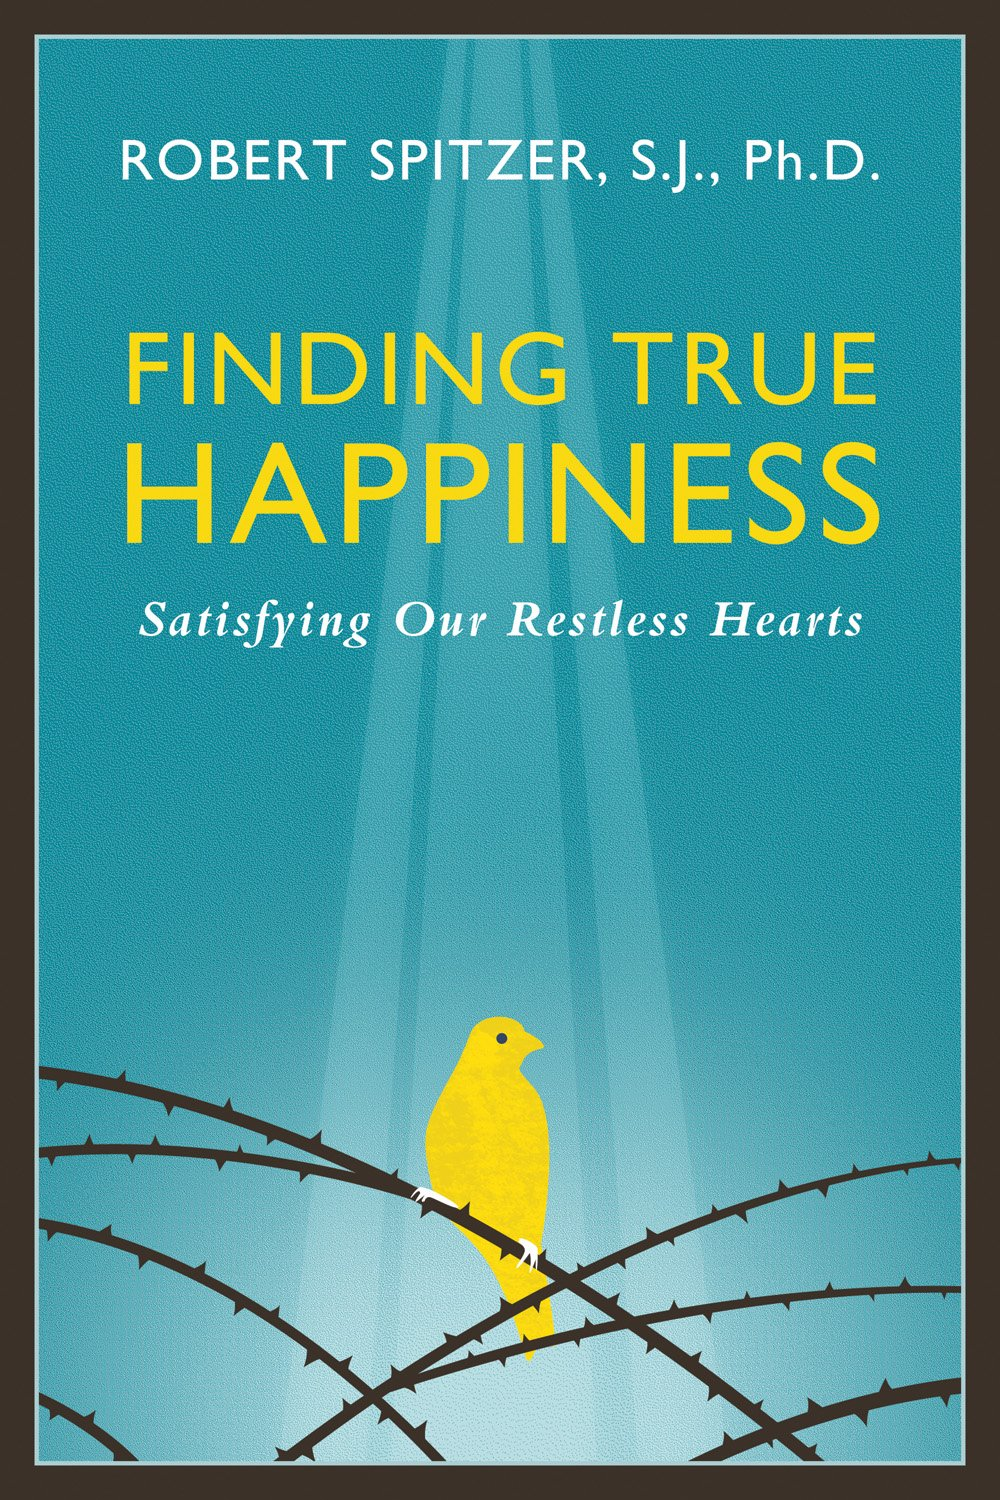 Finding True Happiness Transcendence Book Transcendence product image